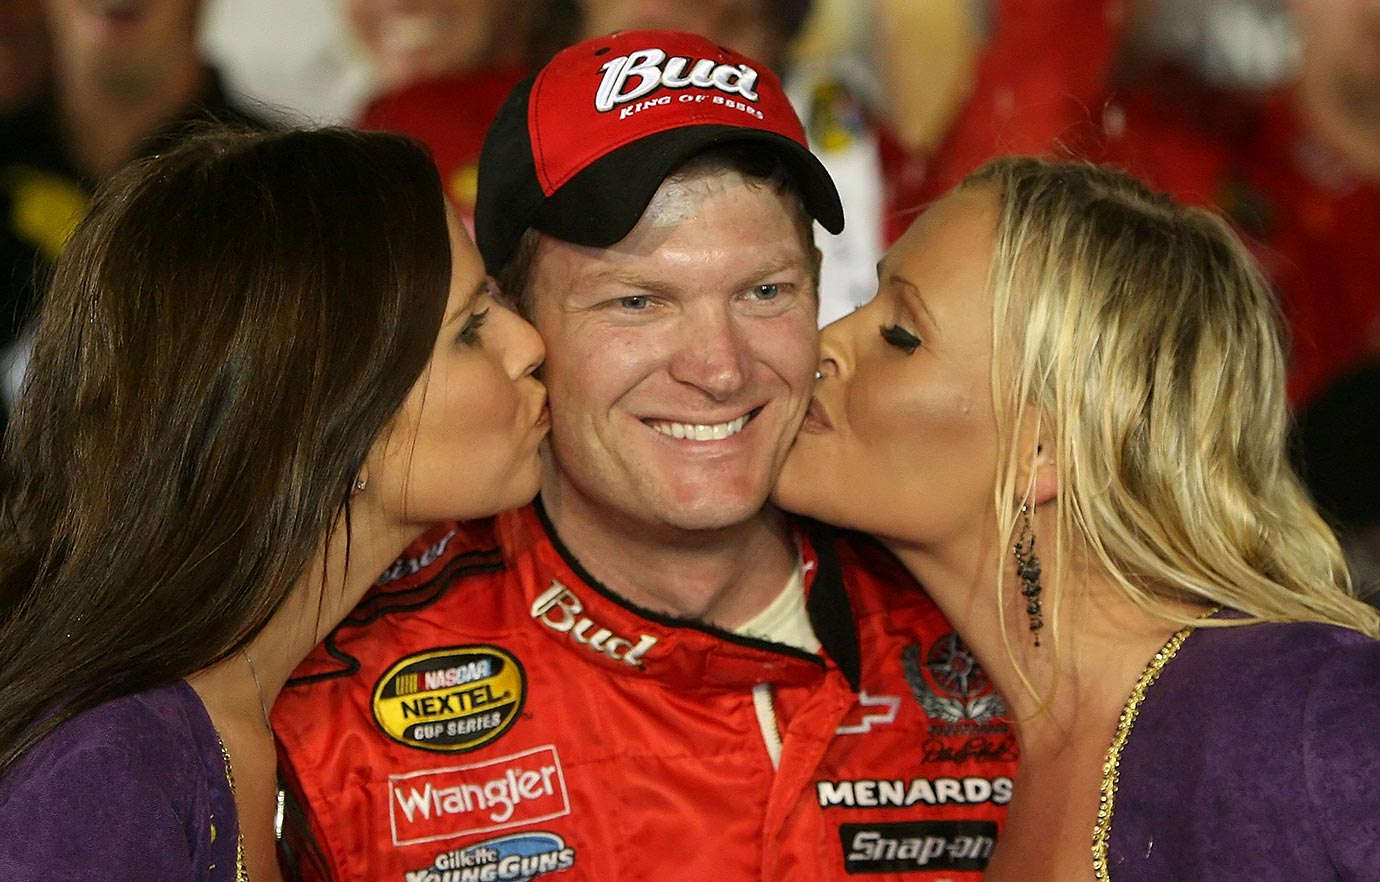 Dale Jr. broke a 46-race winless streak in the tenth race of the season, securing his last ever win in the No. 8 Budweiser car.